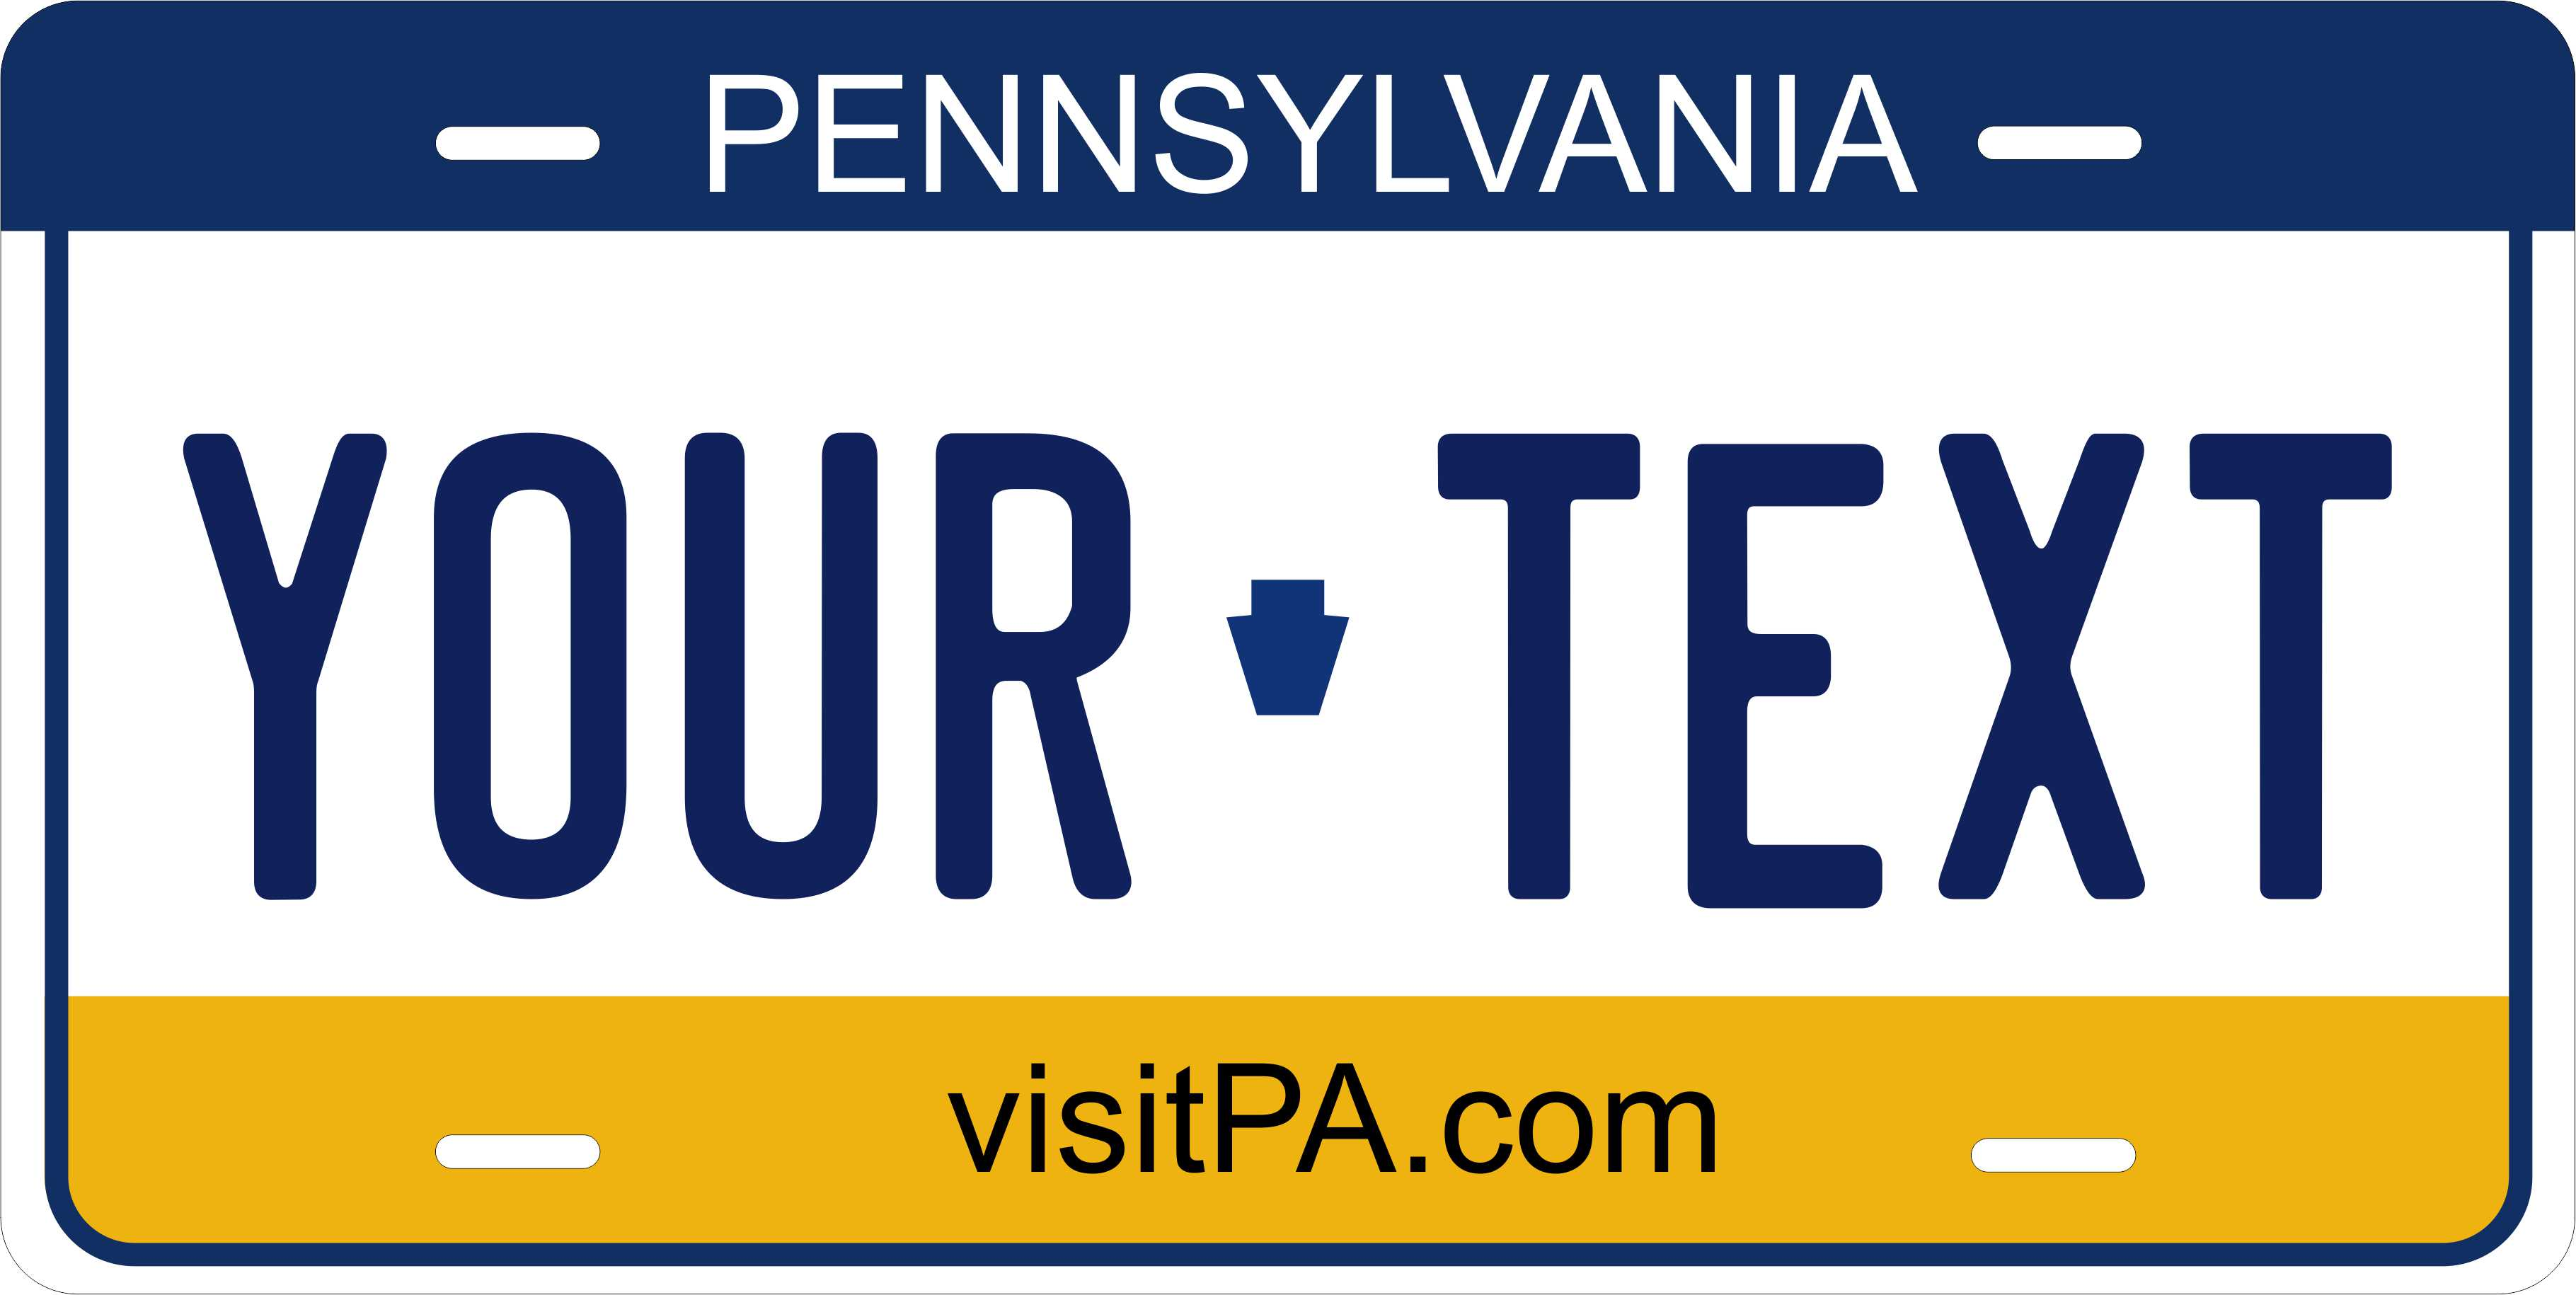 Pennsylvania 1977 License Plate Personalized Auto Car Custom VEHICLE OR MOPED